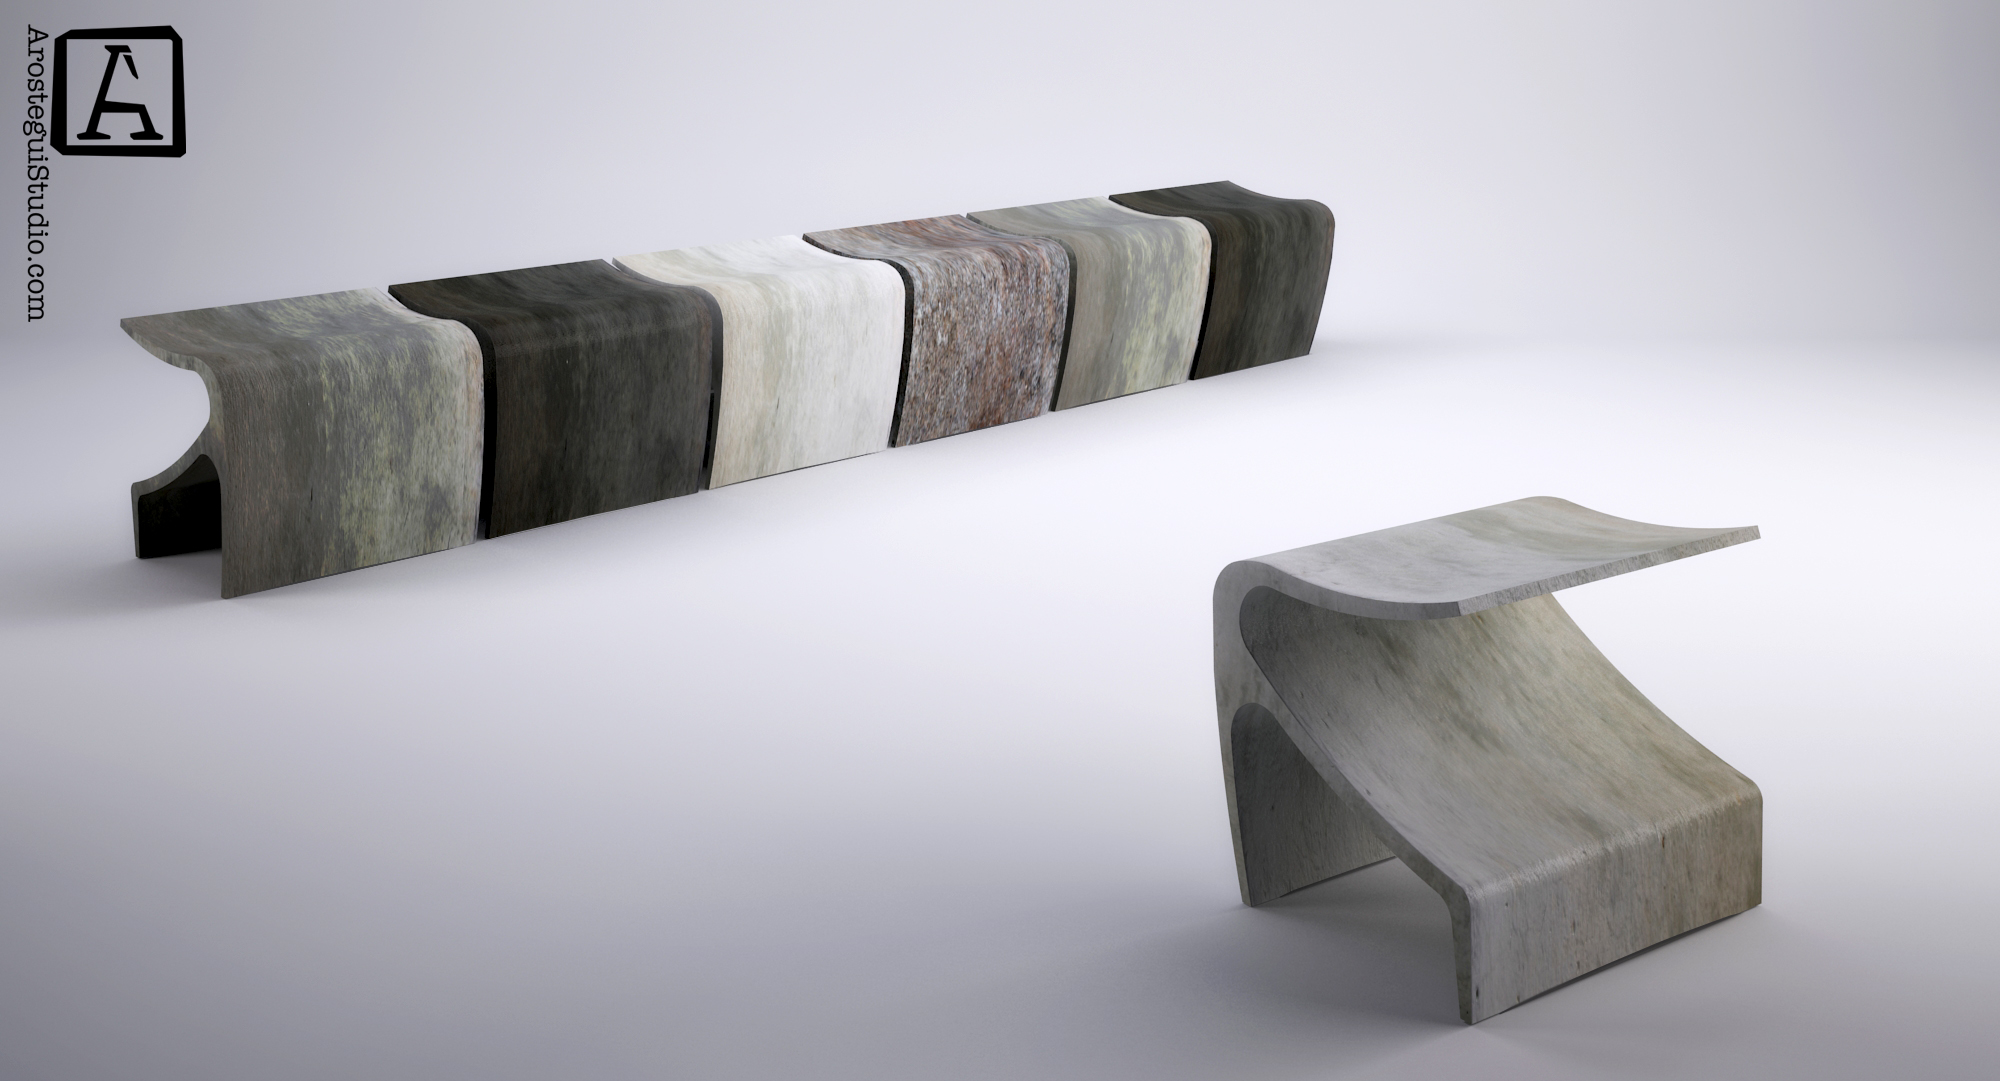 The Sofi bench, Ductal, UHPC (concrete)- ©2015 Arostegui Studio